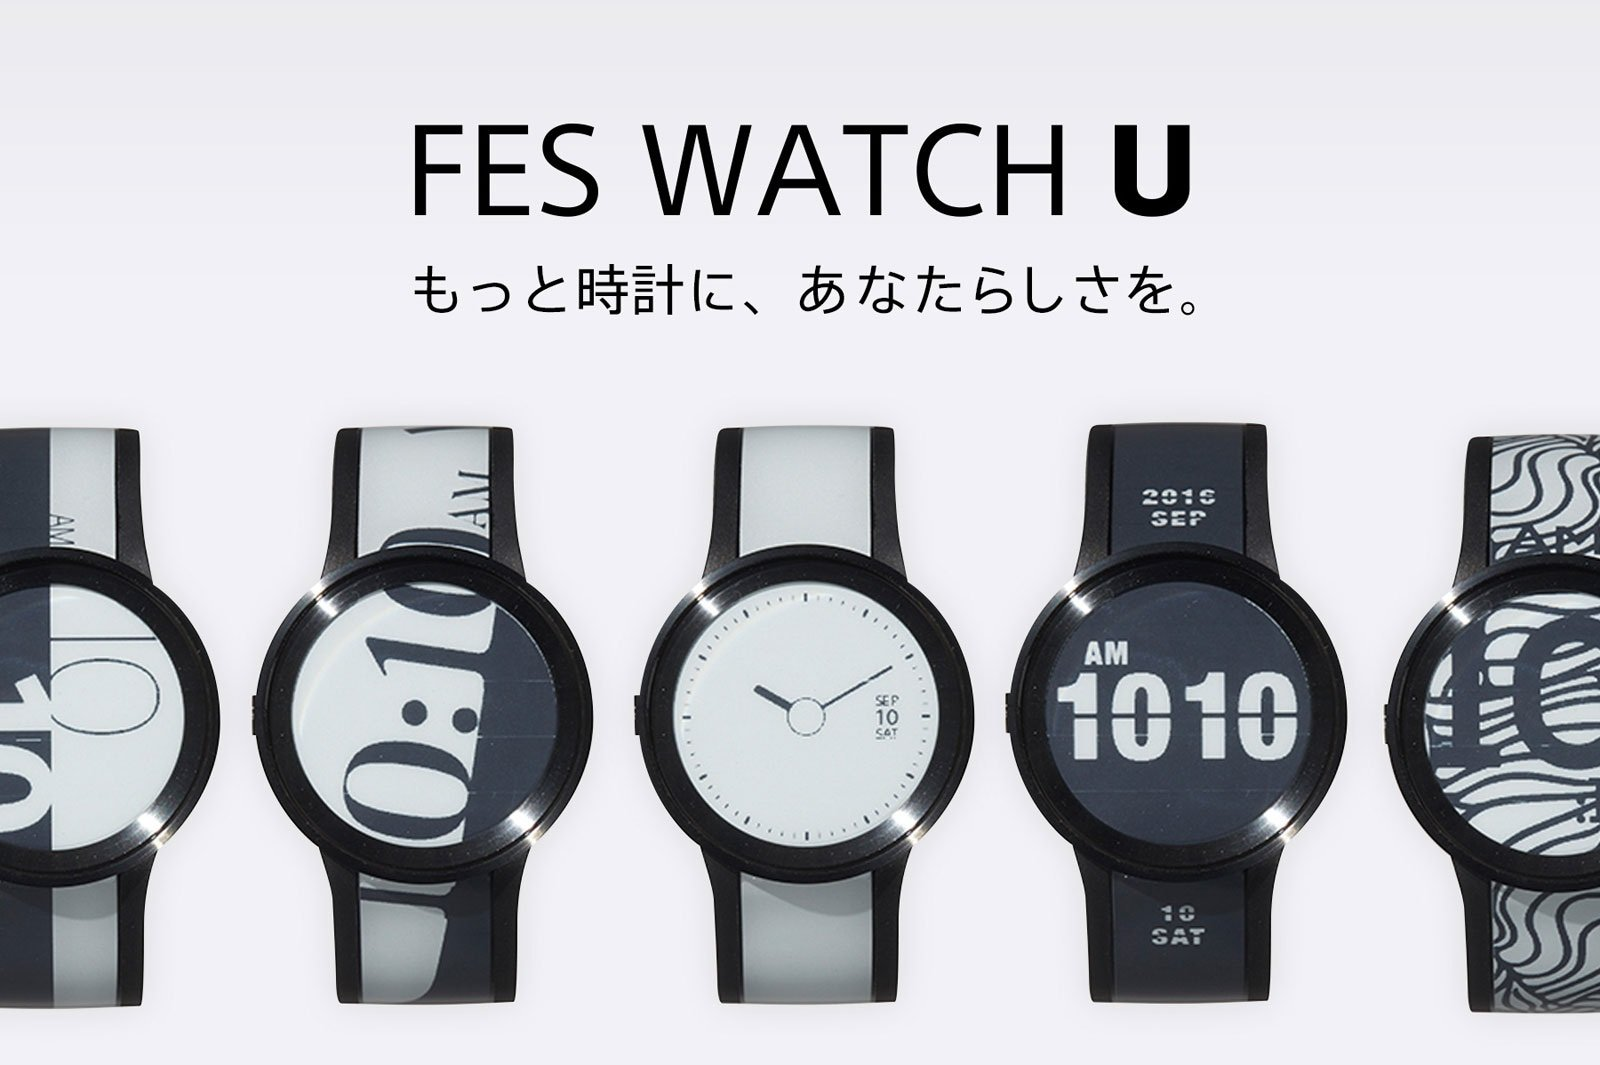 Sony FES Watch U